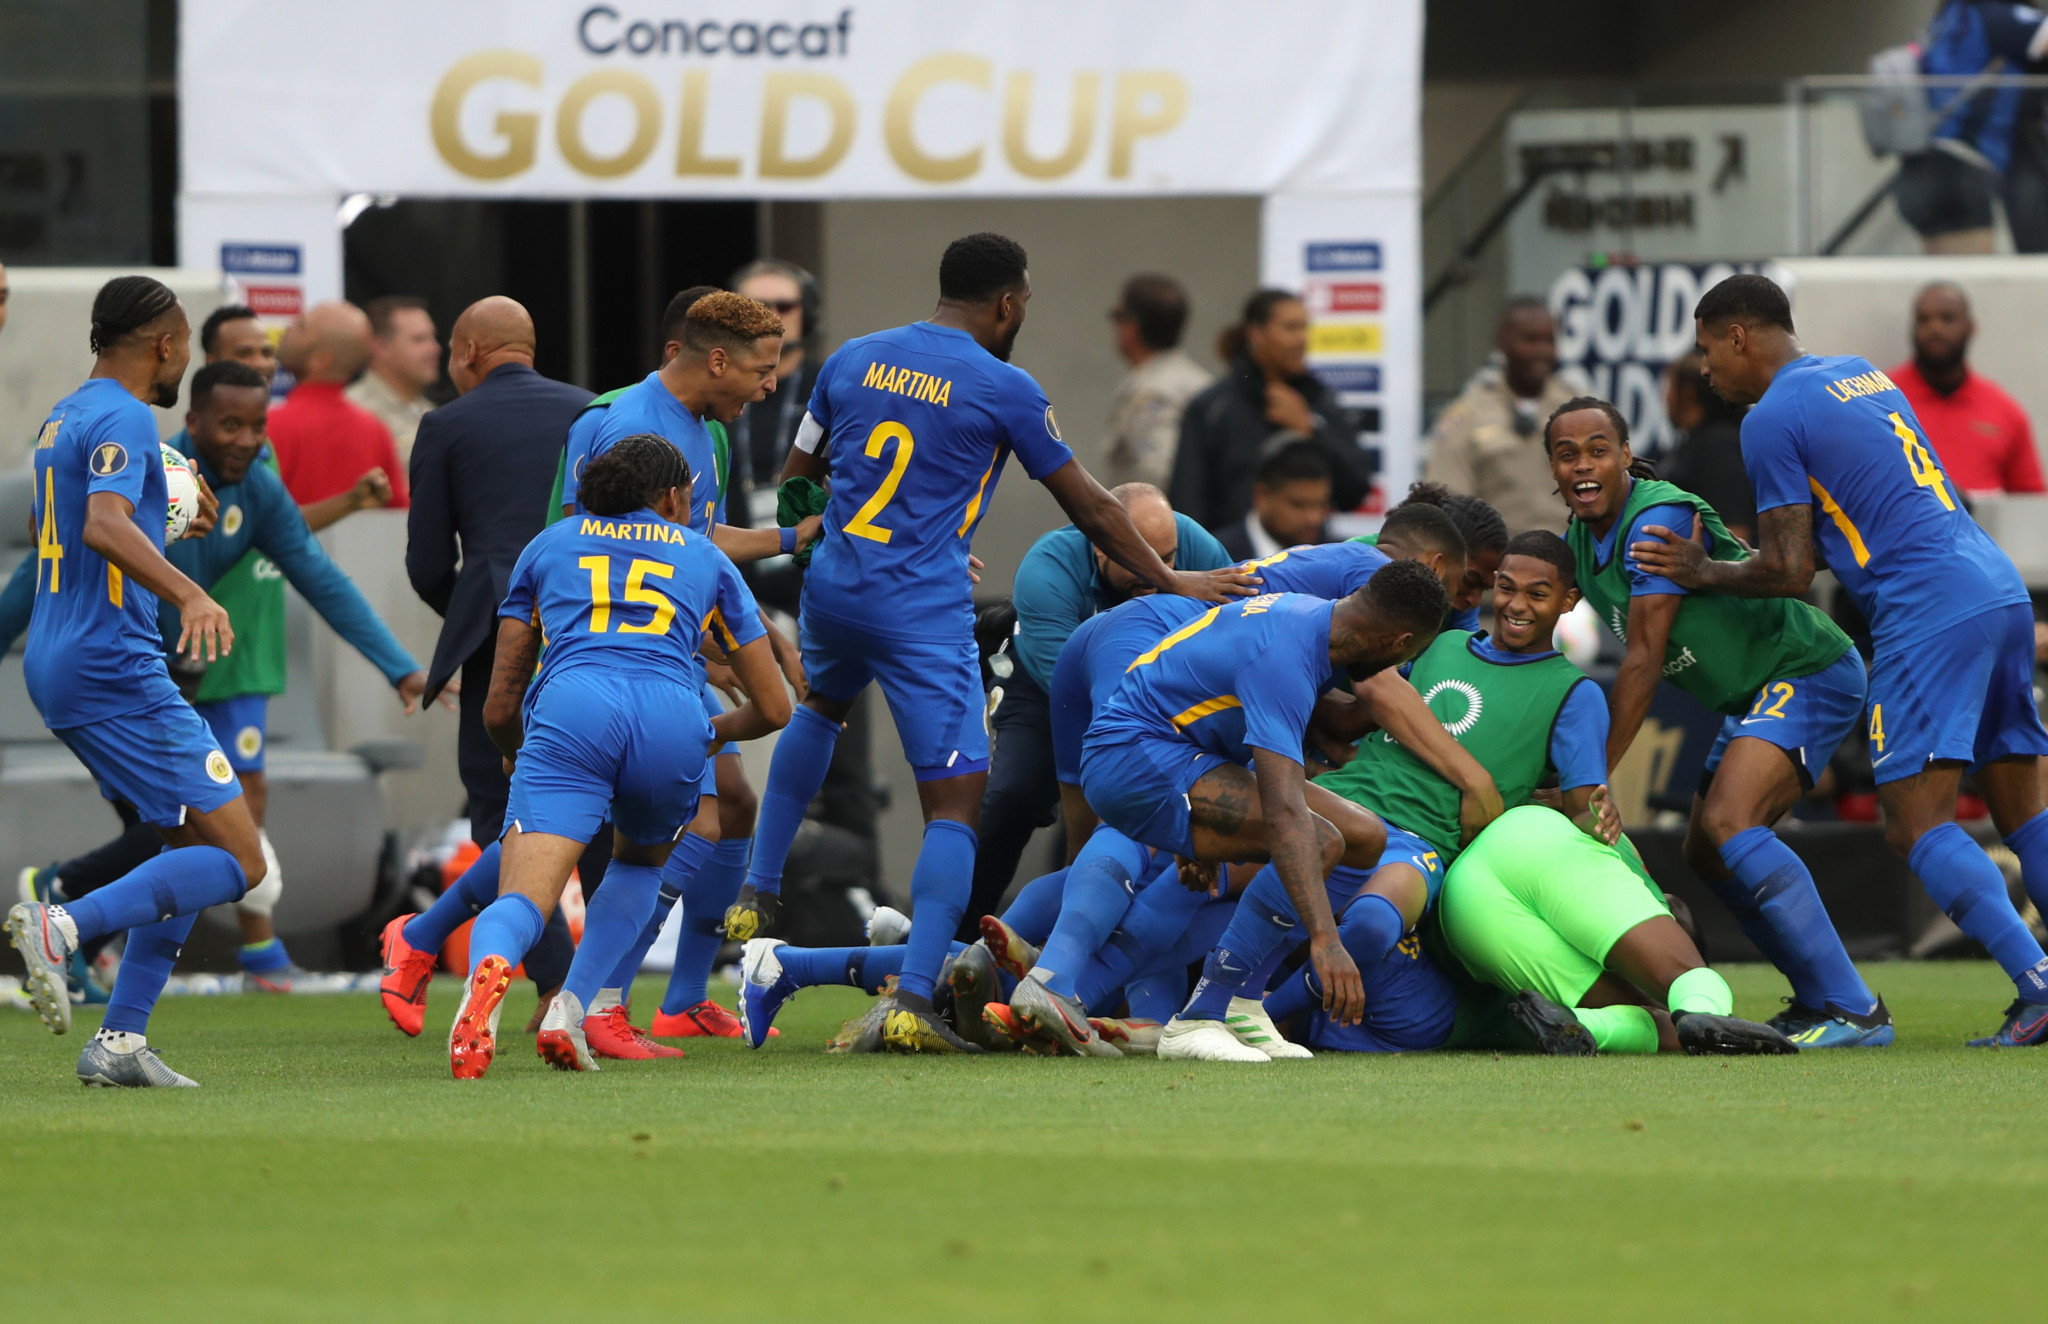 Jurien Gaari scored a dramatic goal in the last seconds of the game to save Curaçao from Gold Cup elimination ©Getty Images